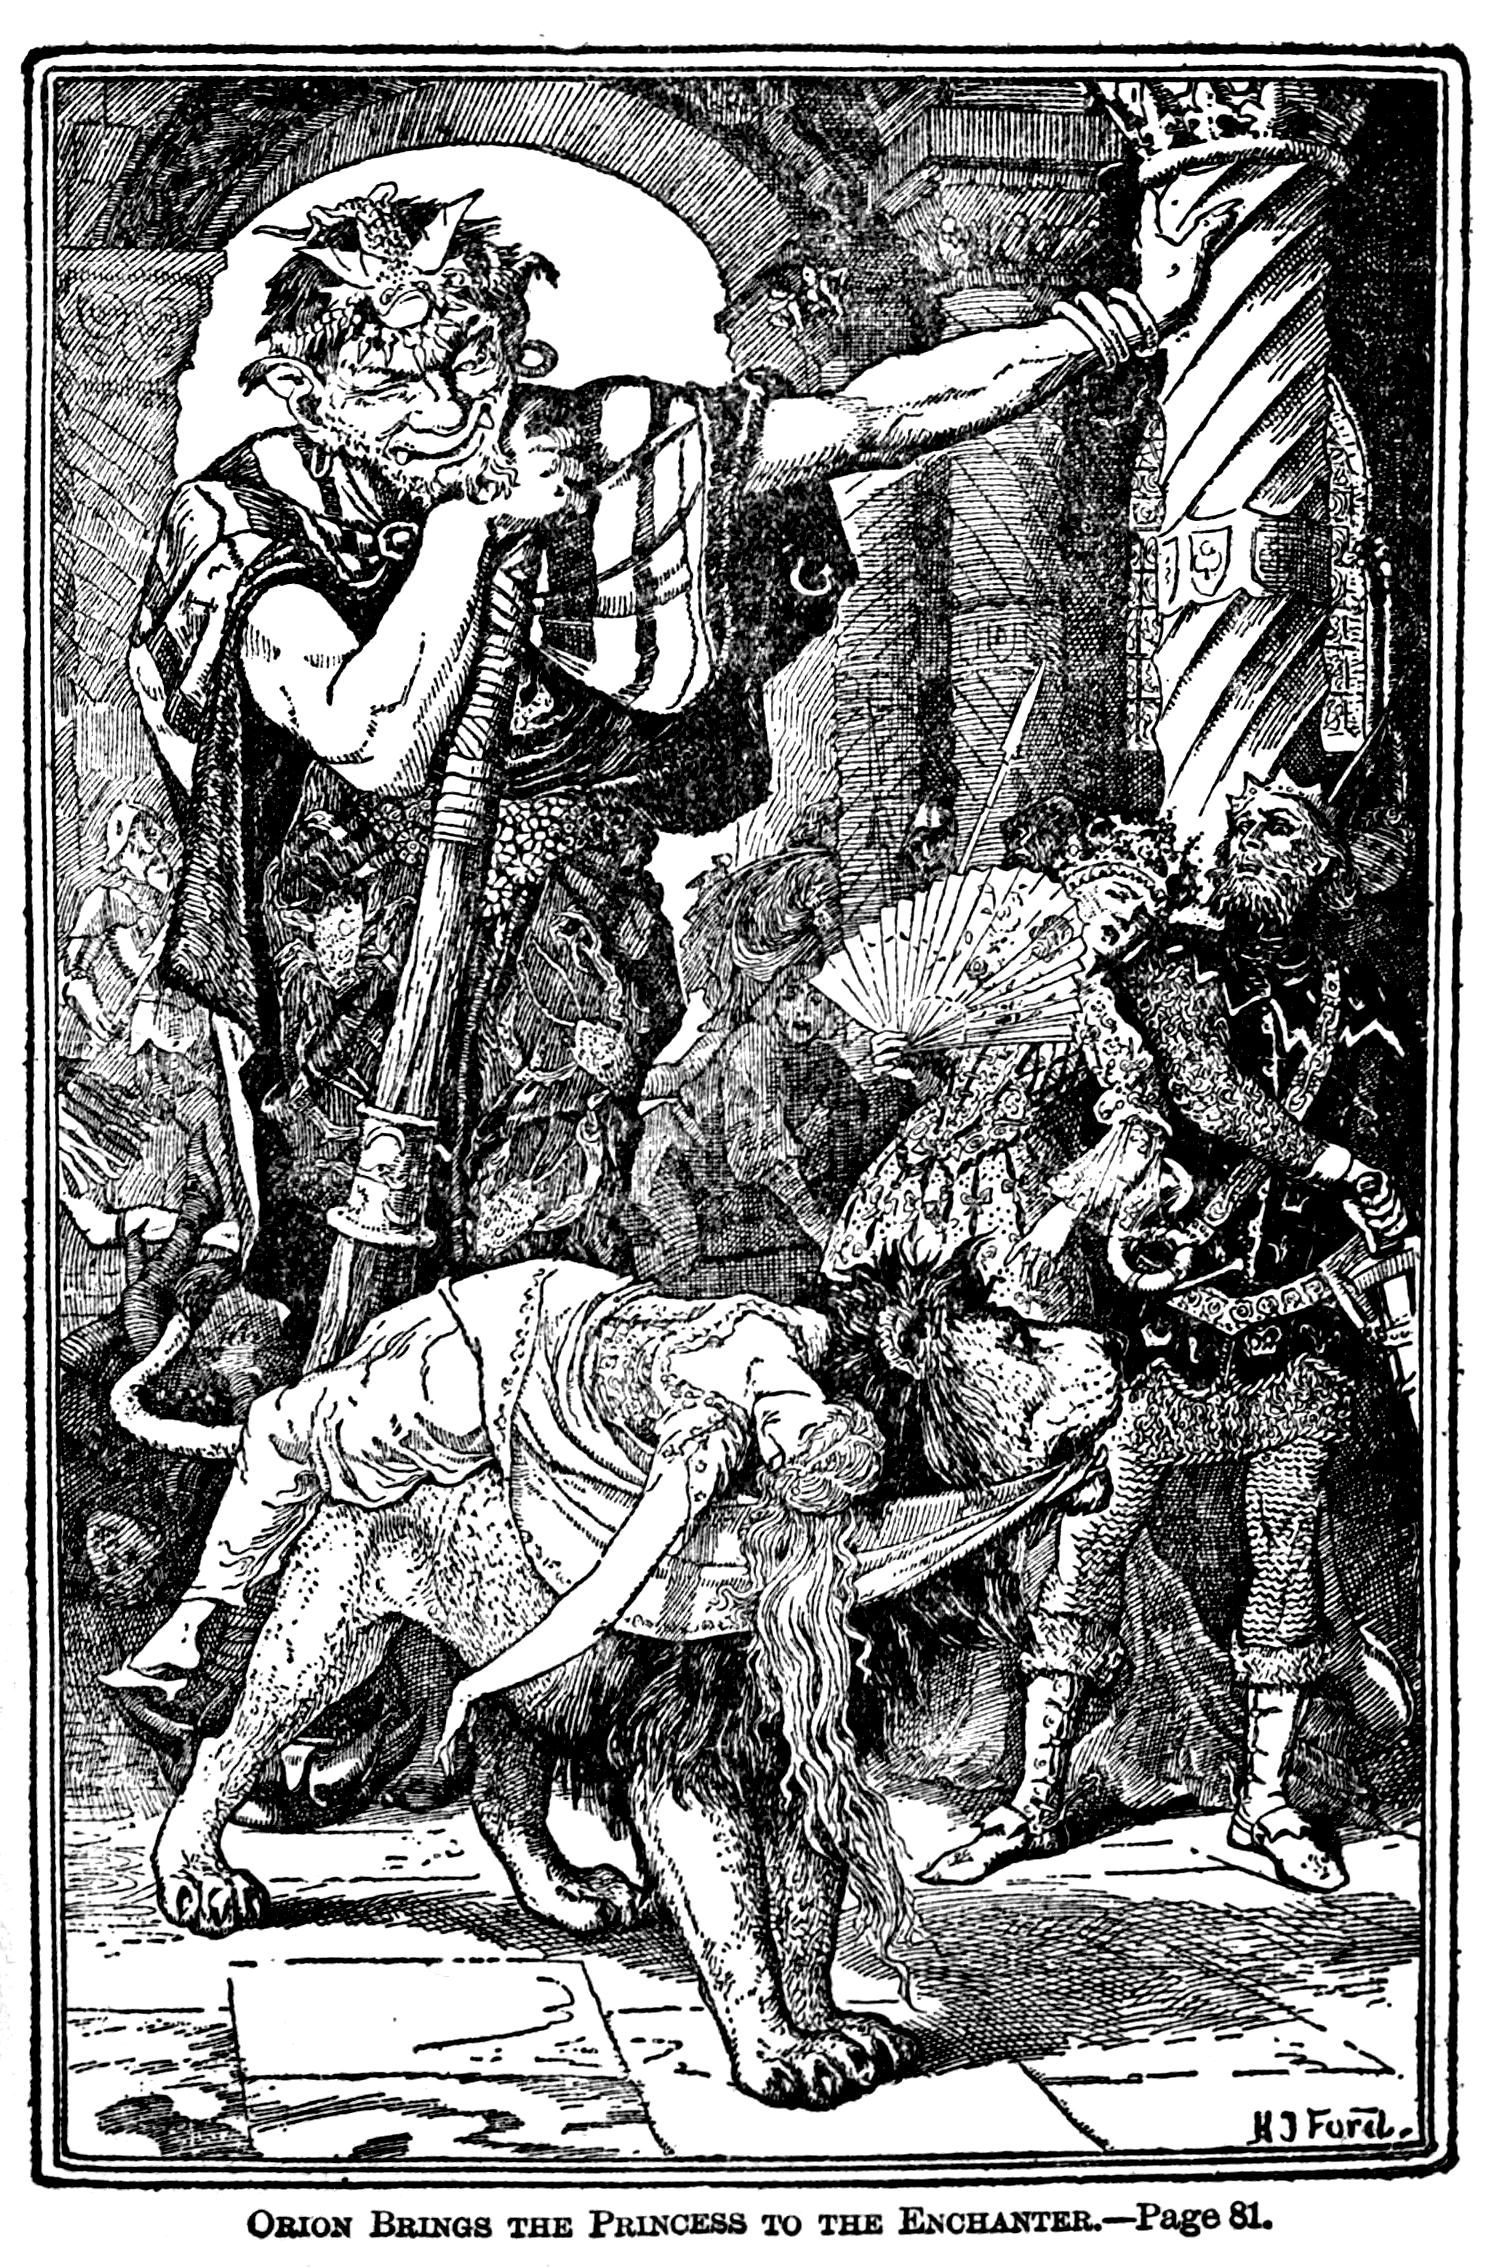 Henry Justice Ford - The green fairy book, edited by Andrew Lang, 1900 (illustration 2)